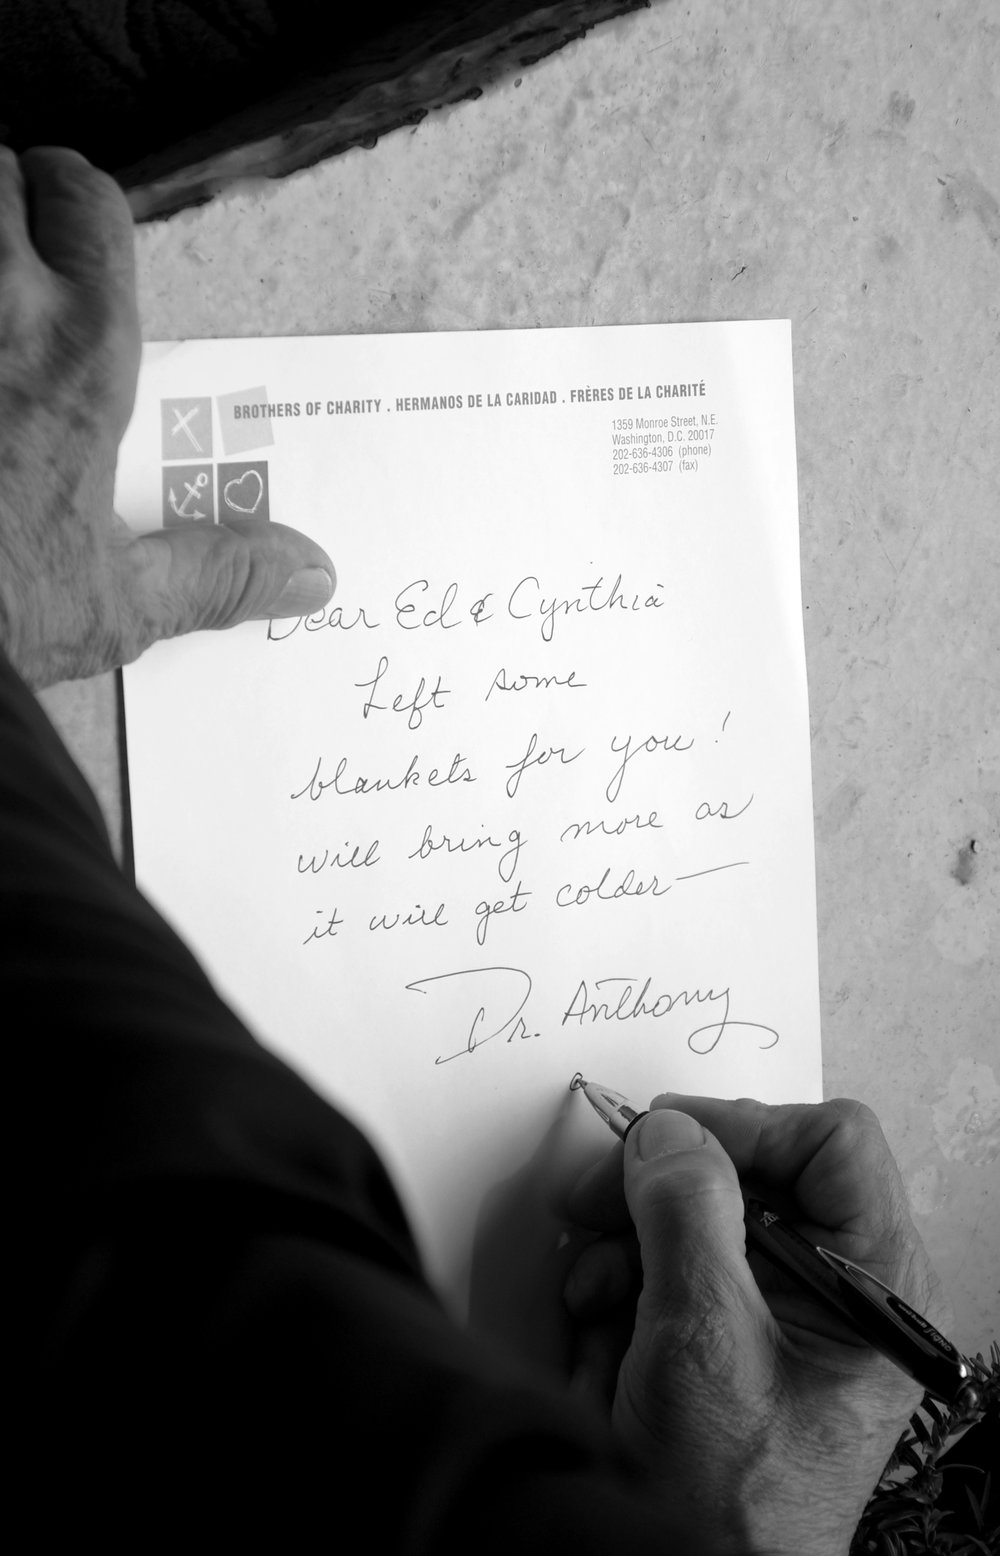 "Dr. Anthony Martinez writes a note for Ed and Cynthia, the homeless couple who live outside the Holy Redeemer Catholic School. ""Dear Ed & Cynthia,"" the note says. ""Left some blankets for you! Will bring more as it will get colder — Dr. Anthony."""